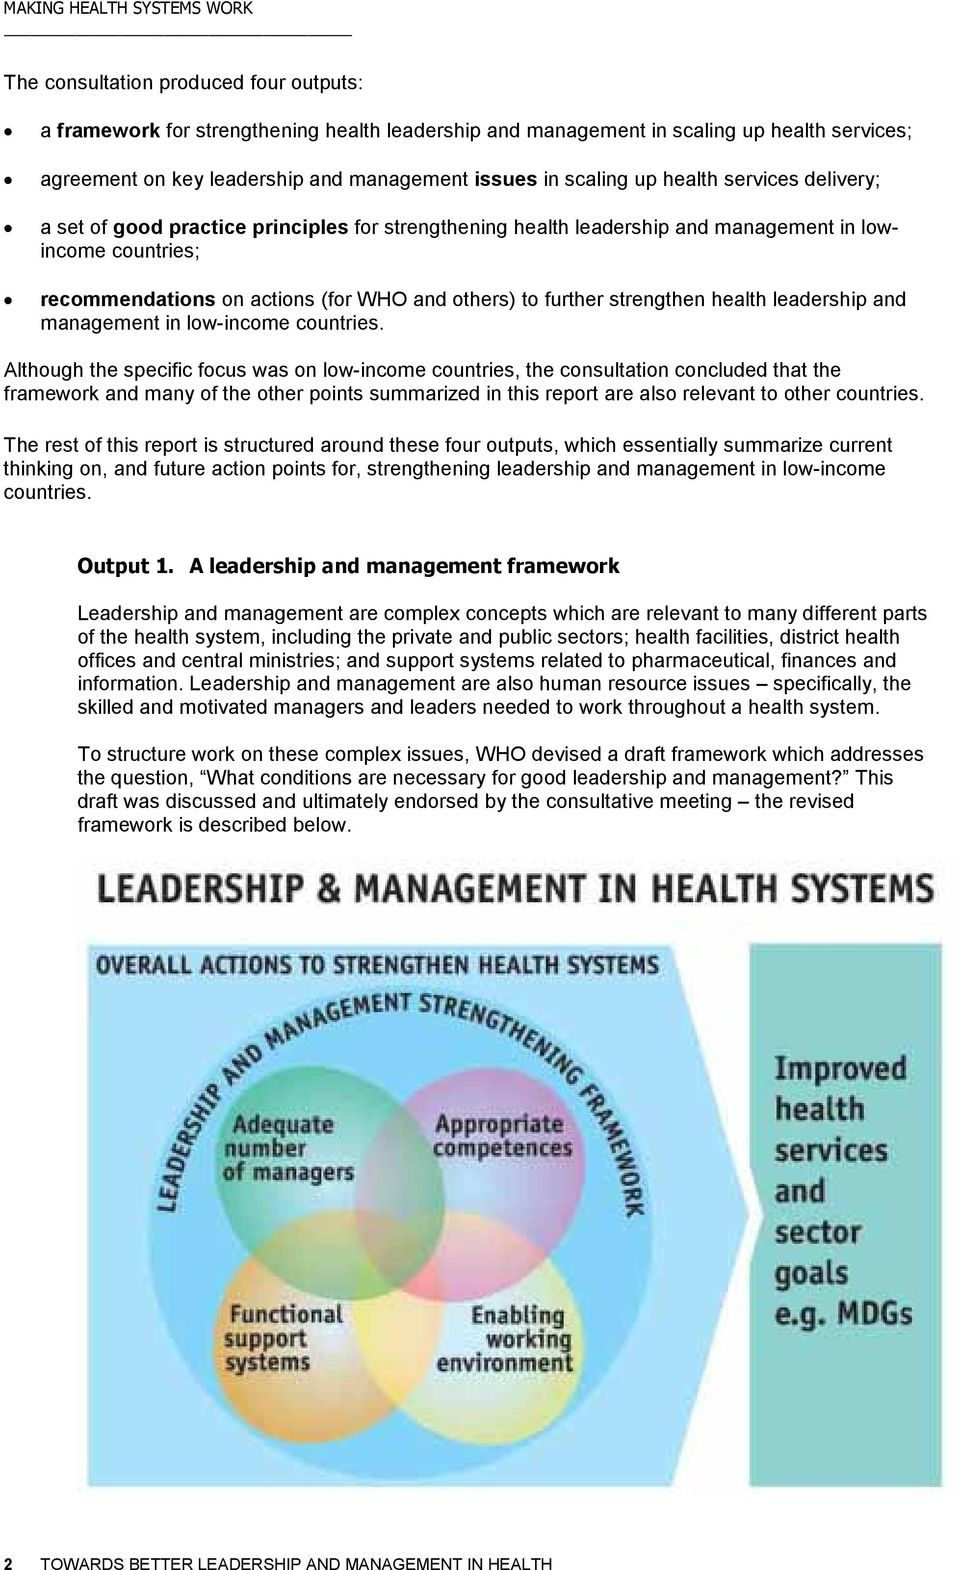 strengthen health leadership and management in low-income countries.